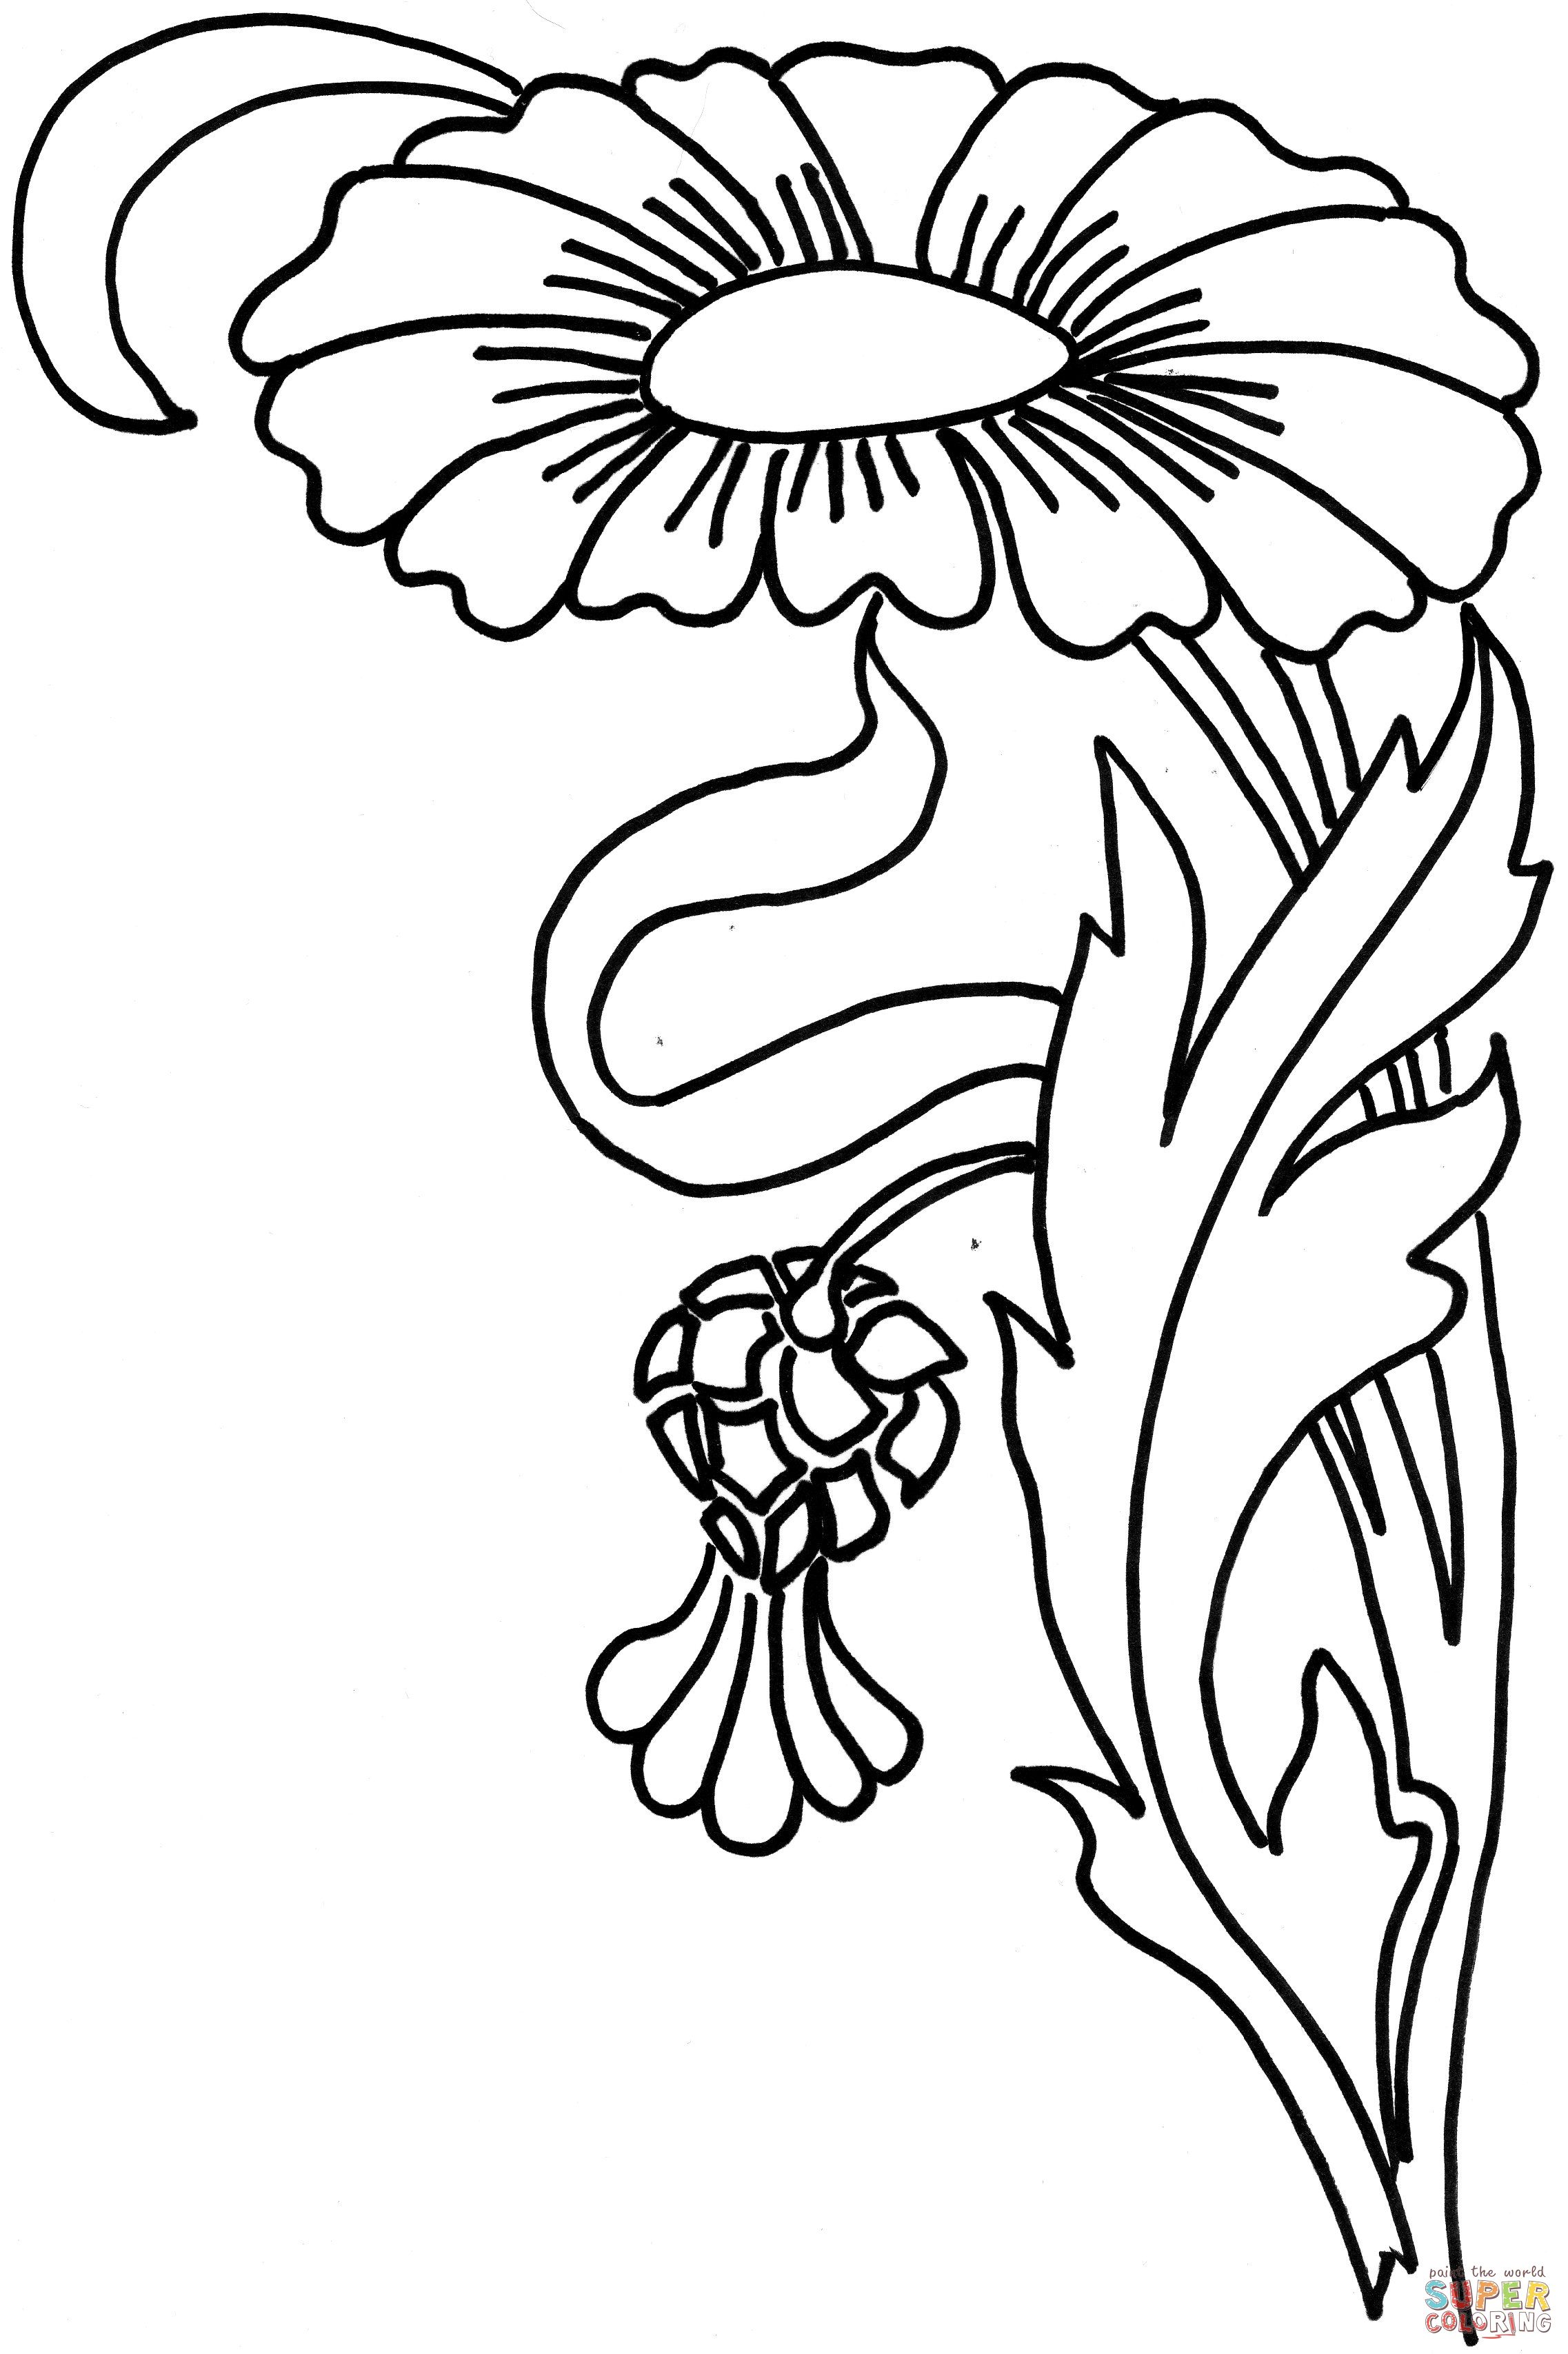 Zinnia Flower Coloring Page Free Printable Coloring Pages With